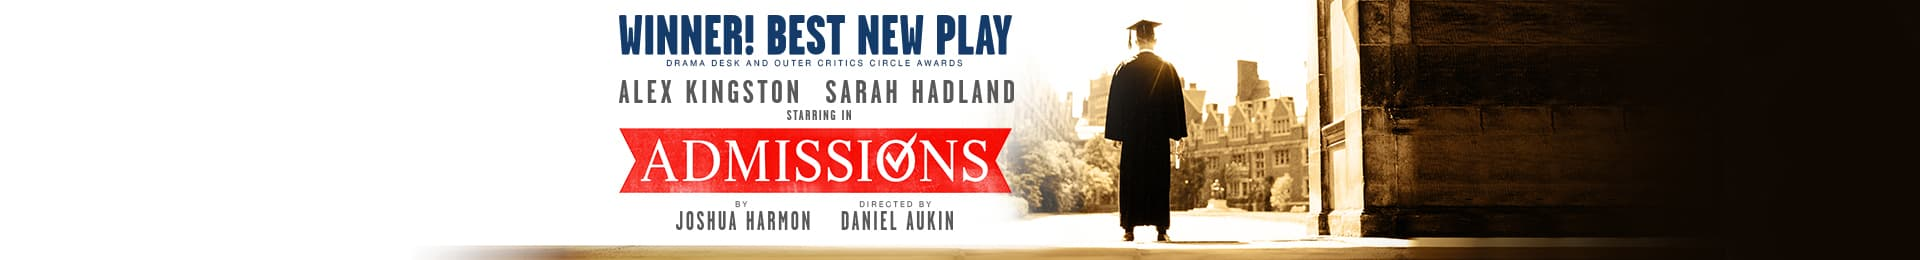 Admissions banner image